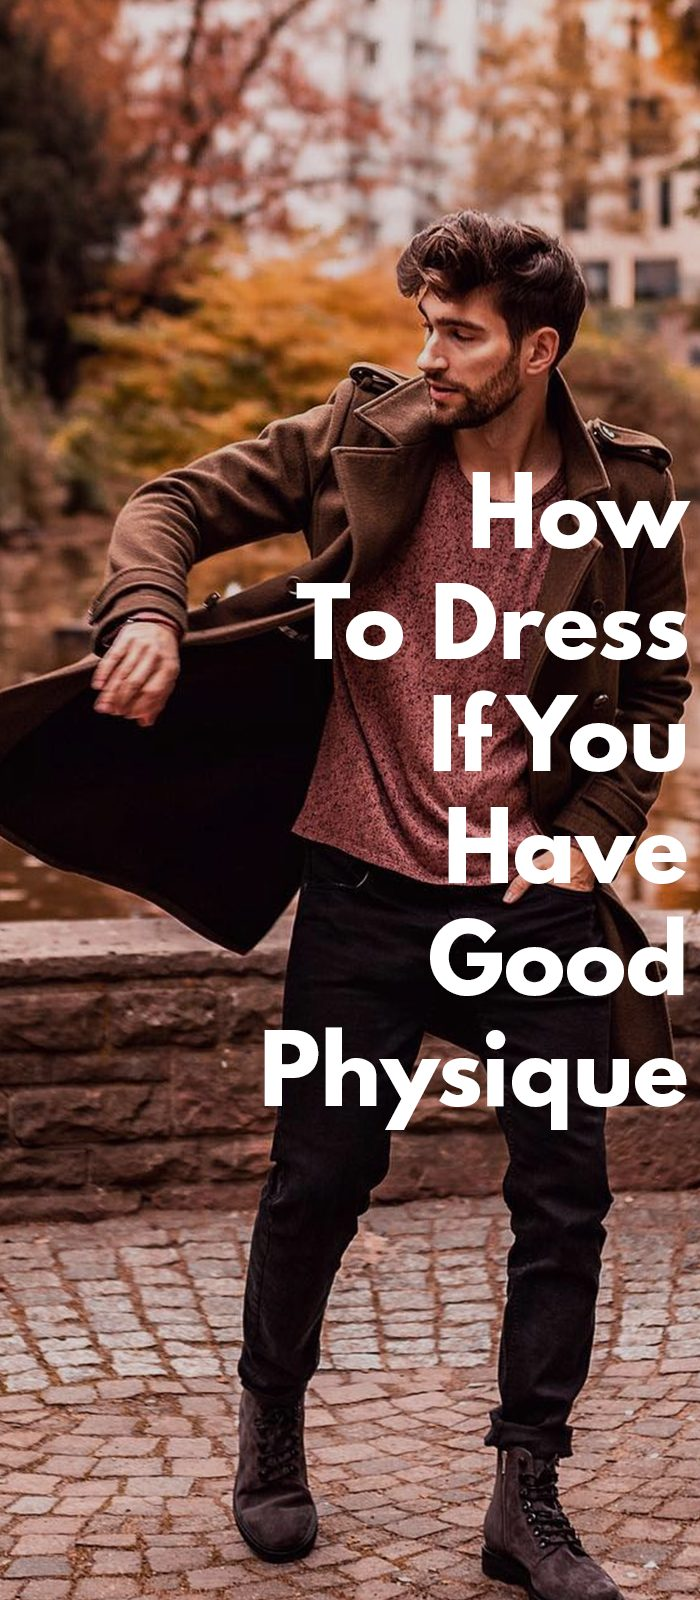 How To Dress If You Have Good Physique